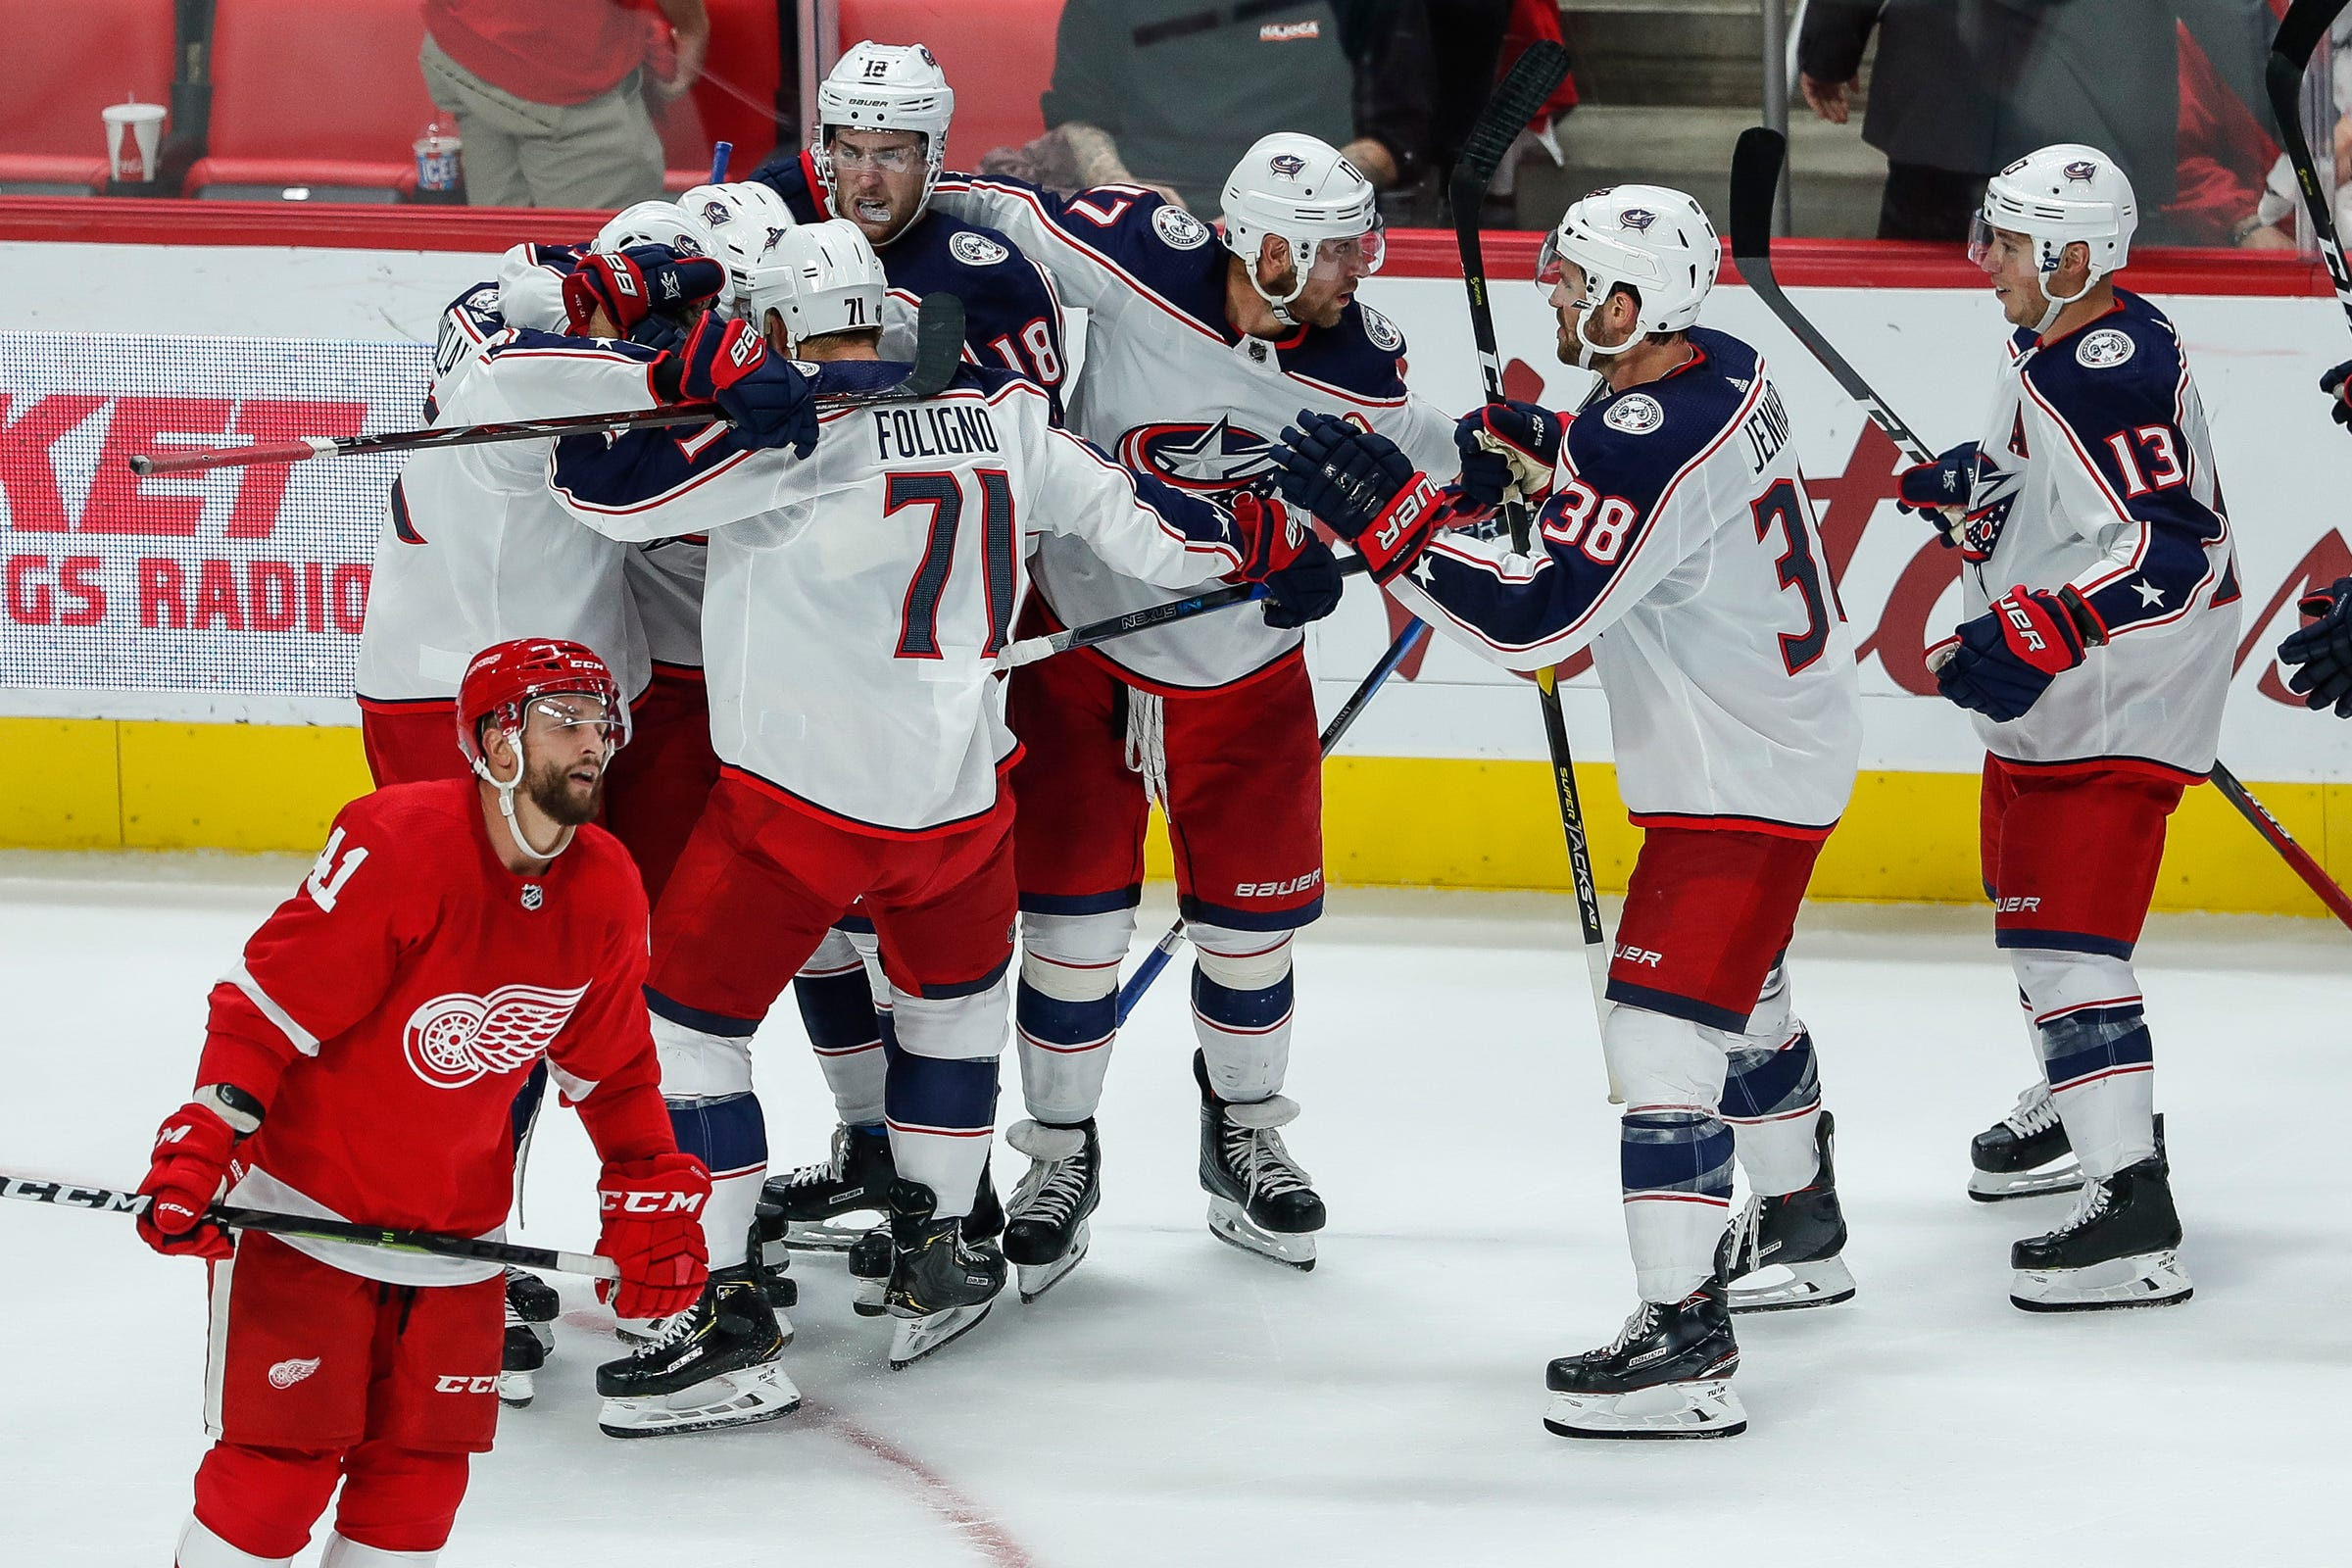 Red Wings forward Luke Glendening skates away as Blue Jackets players celebrate after the Wings' 3-2 overtime loss to the Blue Jackets on Thursday, Oct. 4, 2018, at Little Caesars Arena.